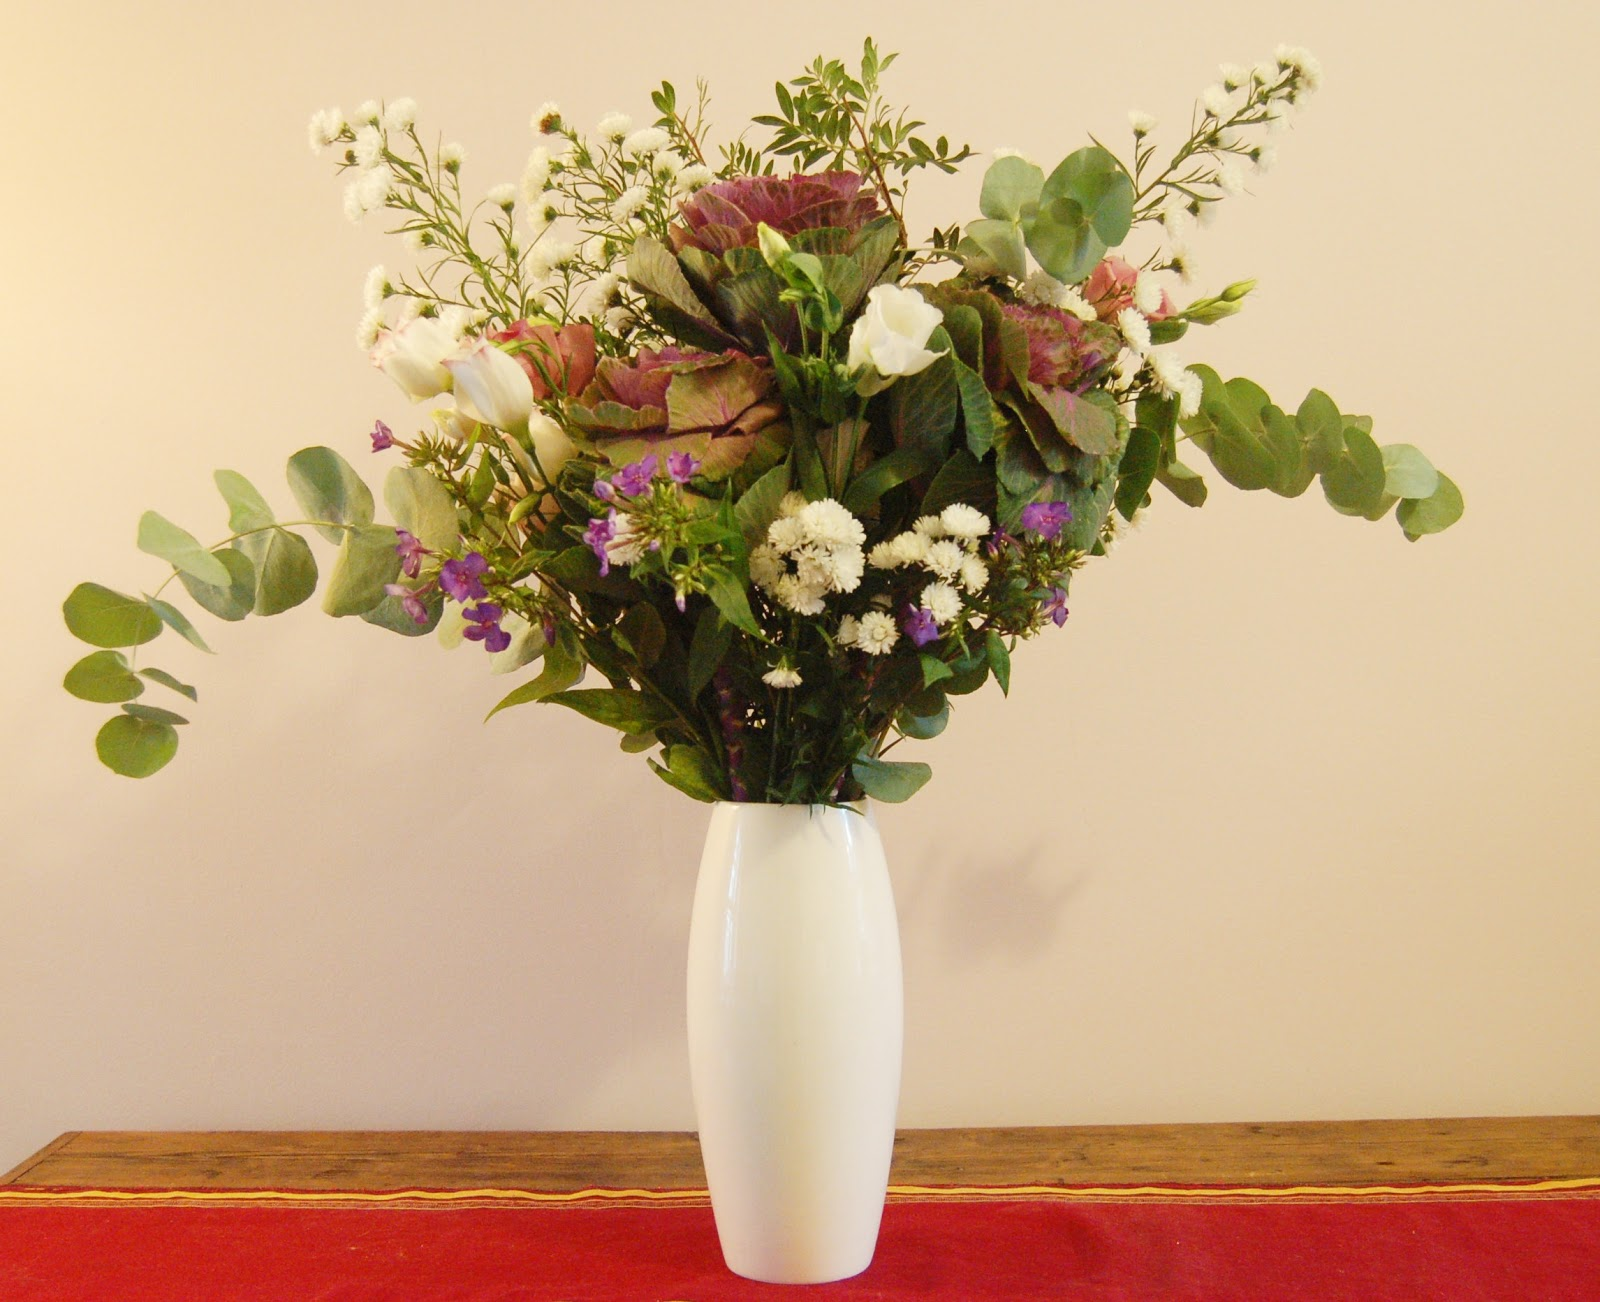 Flowers for the weekend goes live sign up for weekly or fortnightly the trial bunch consisted of brassica three cabbages white and pink lisianthus some white september aster and purple phlox the foliage was eucalyptus mightylinksfo